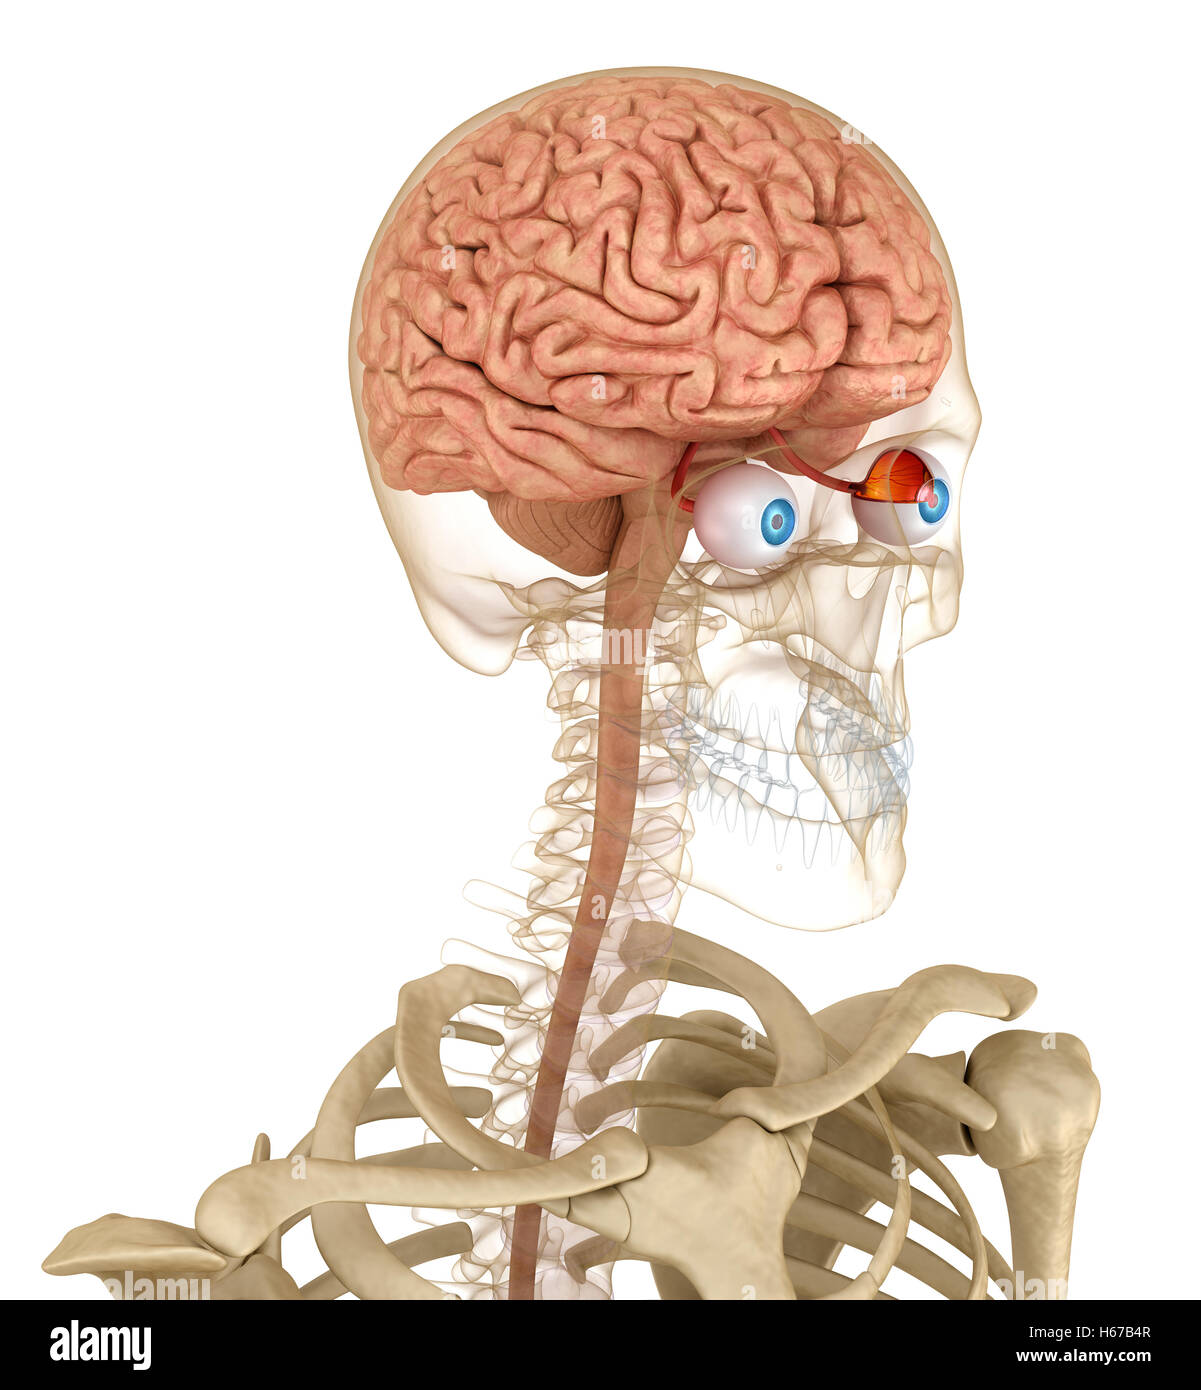 Optical Nerve Brain Anatomy 3d Stock Photos & Optical Nerve Brain ...